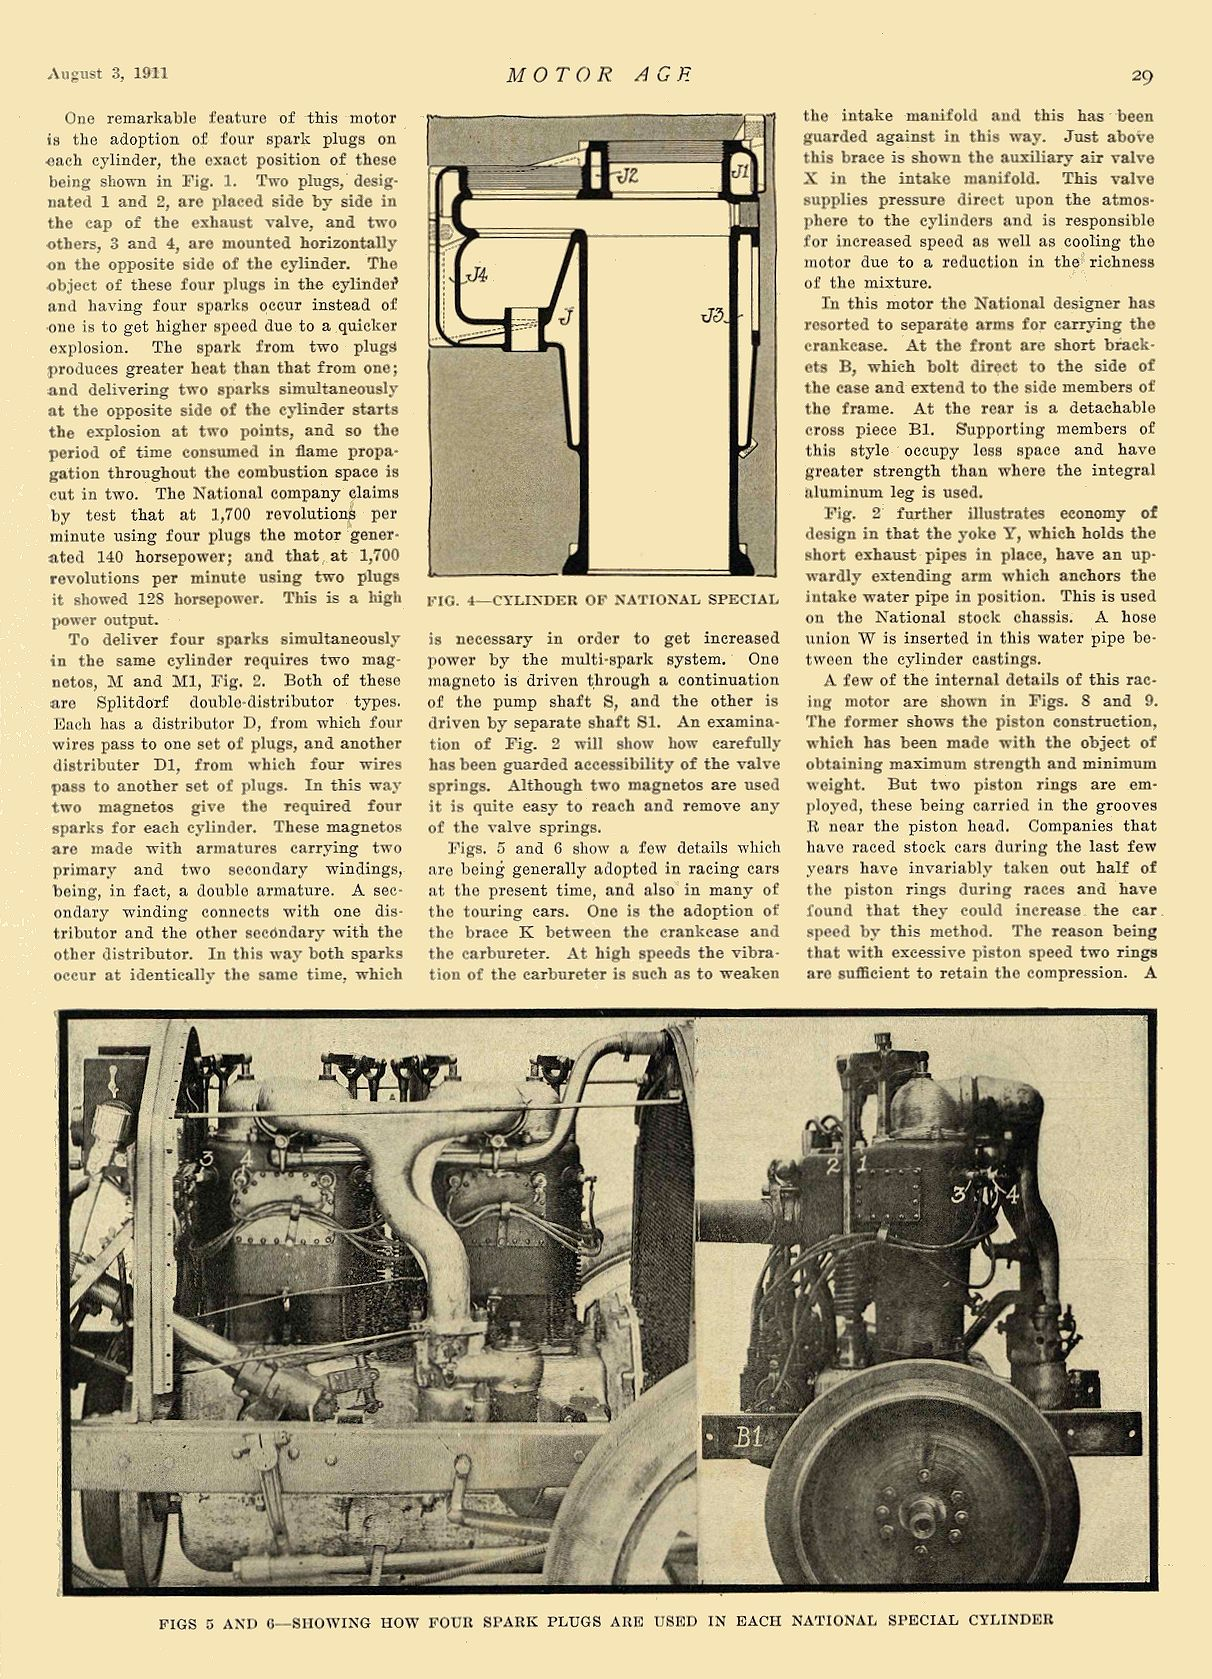 1911 8 3 NATIONAL Article National Special Long-Stroke Motor National Motor Vehicle Co. Indianapolis, IND MOTOR AGE August 3, 1911 8.5″x11.75″ page 29